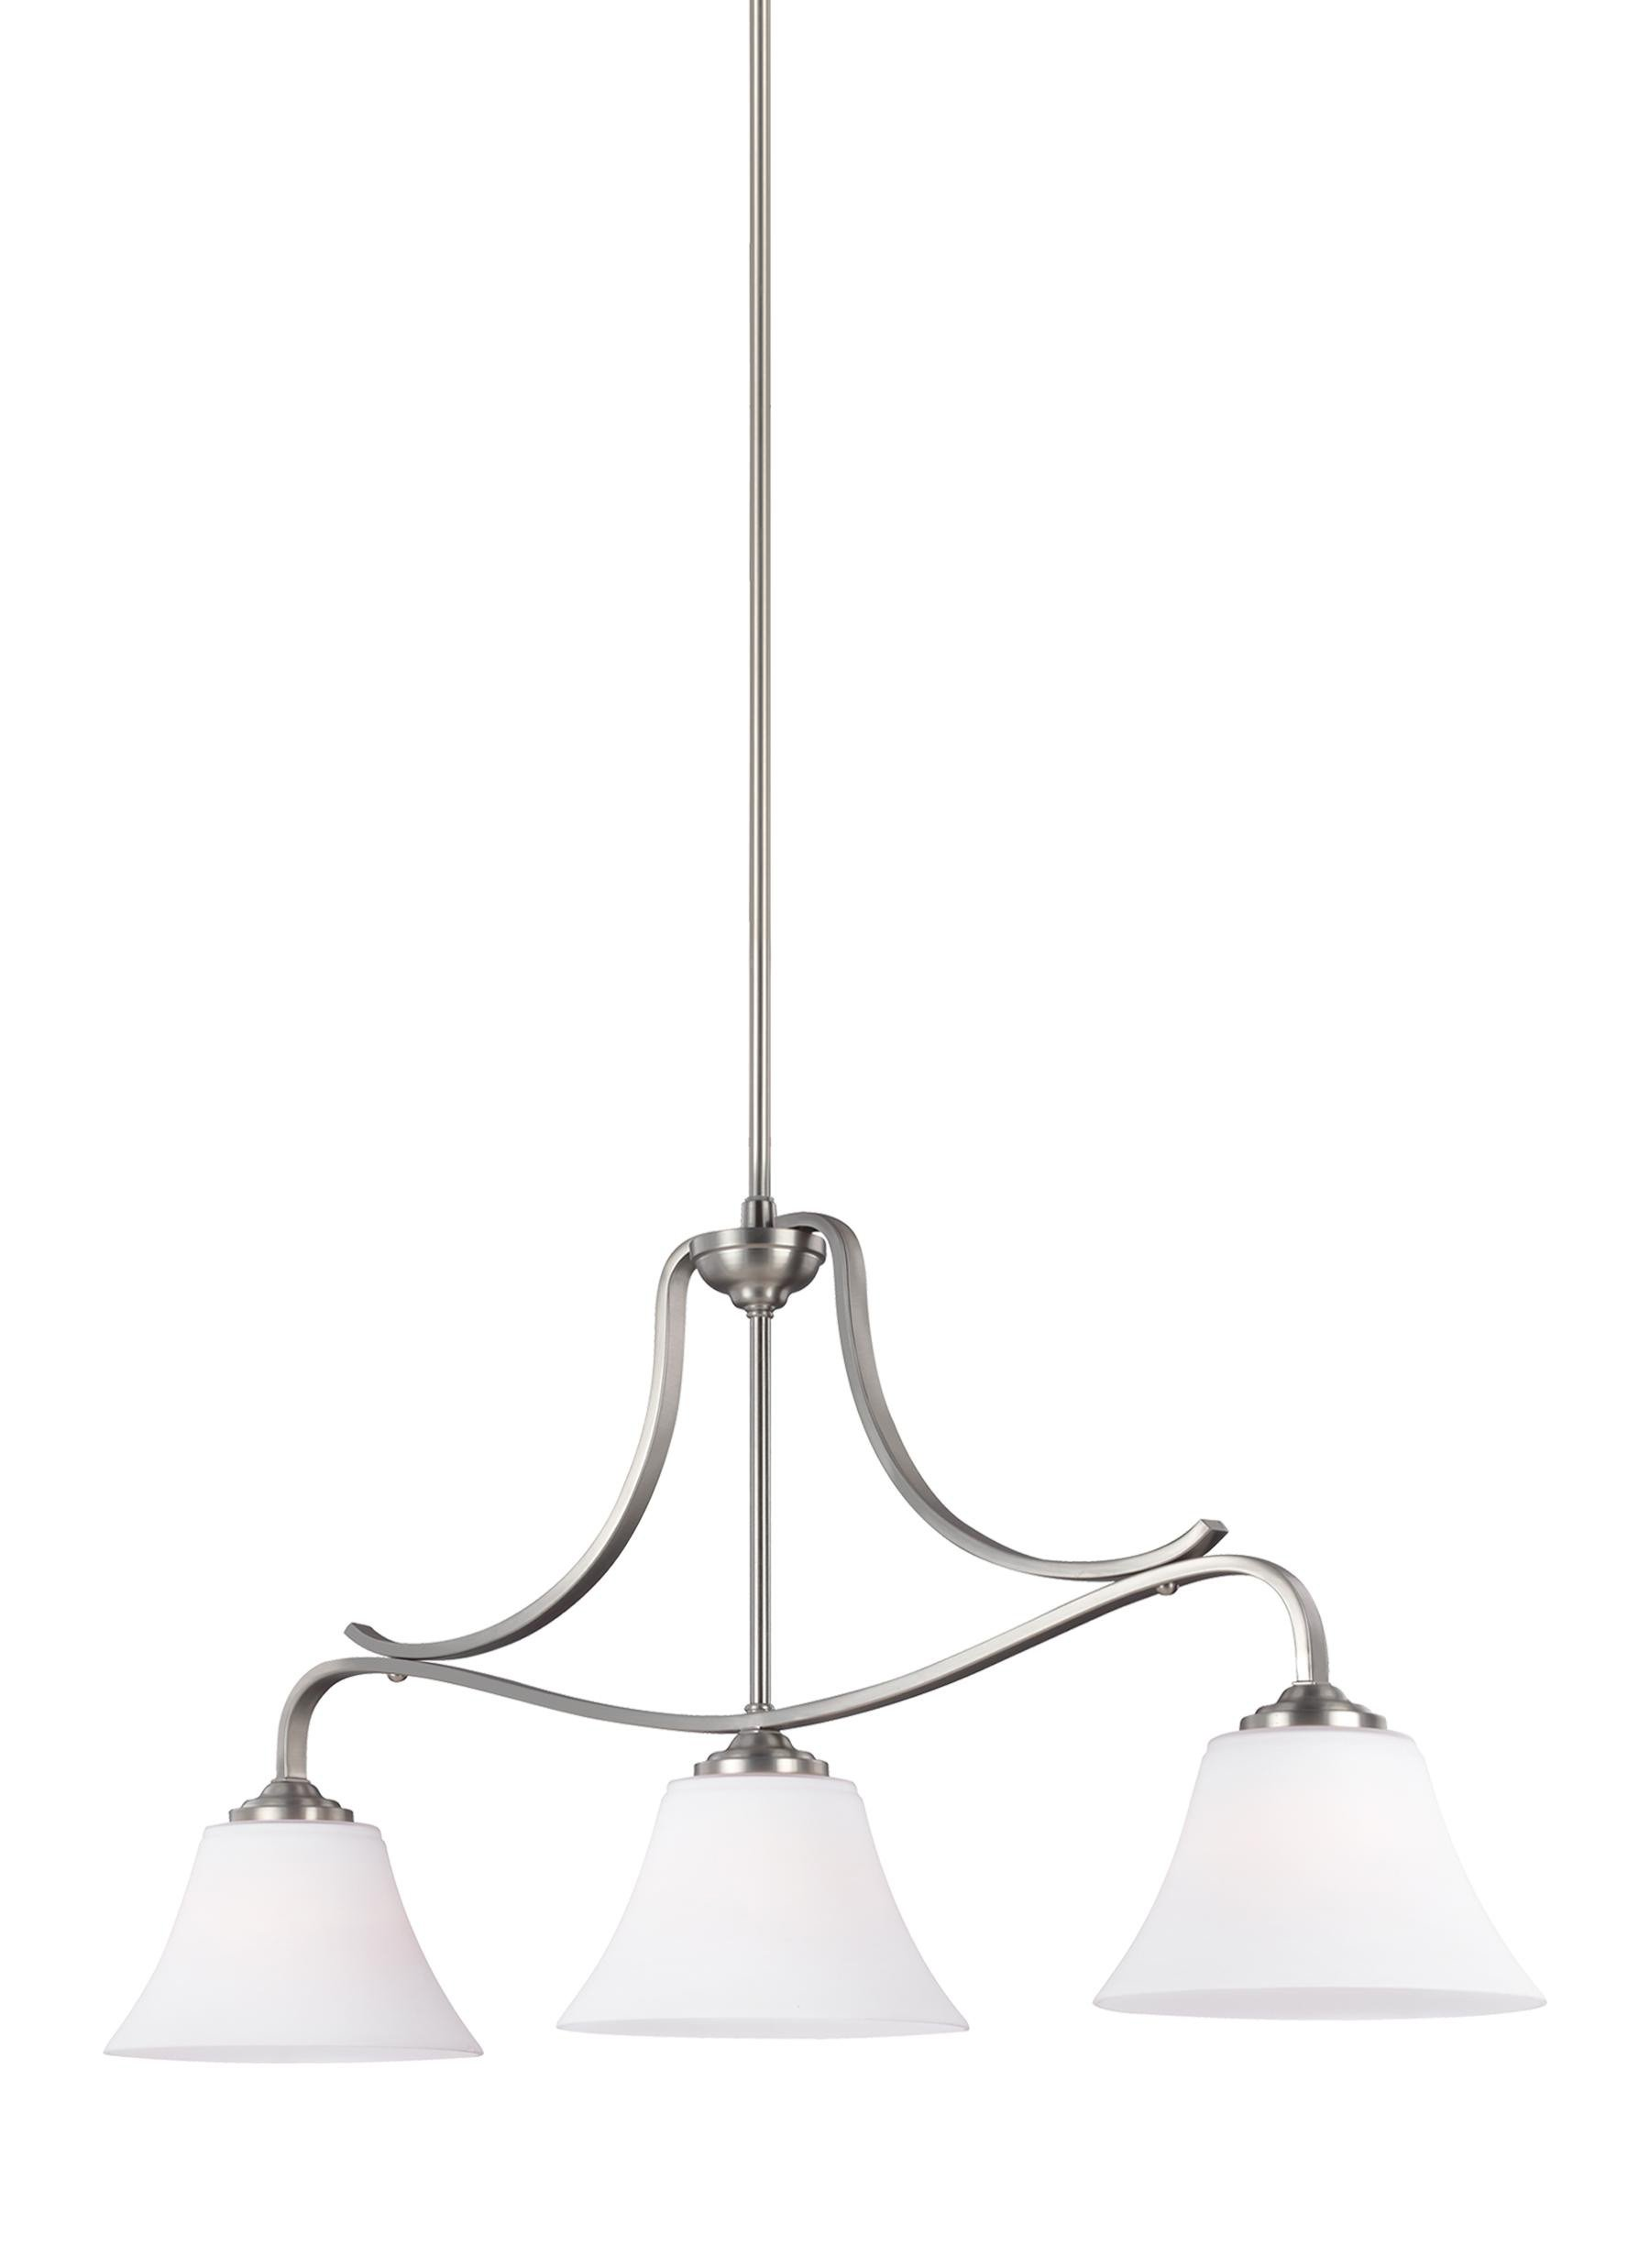 Feiss F3068/3SN Hamlet Island Chandelier with Glass Shades, 3-Light, Satin Nickel (10''W by 19''H)